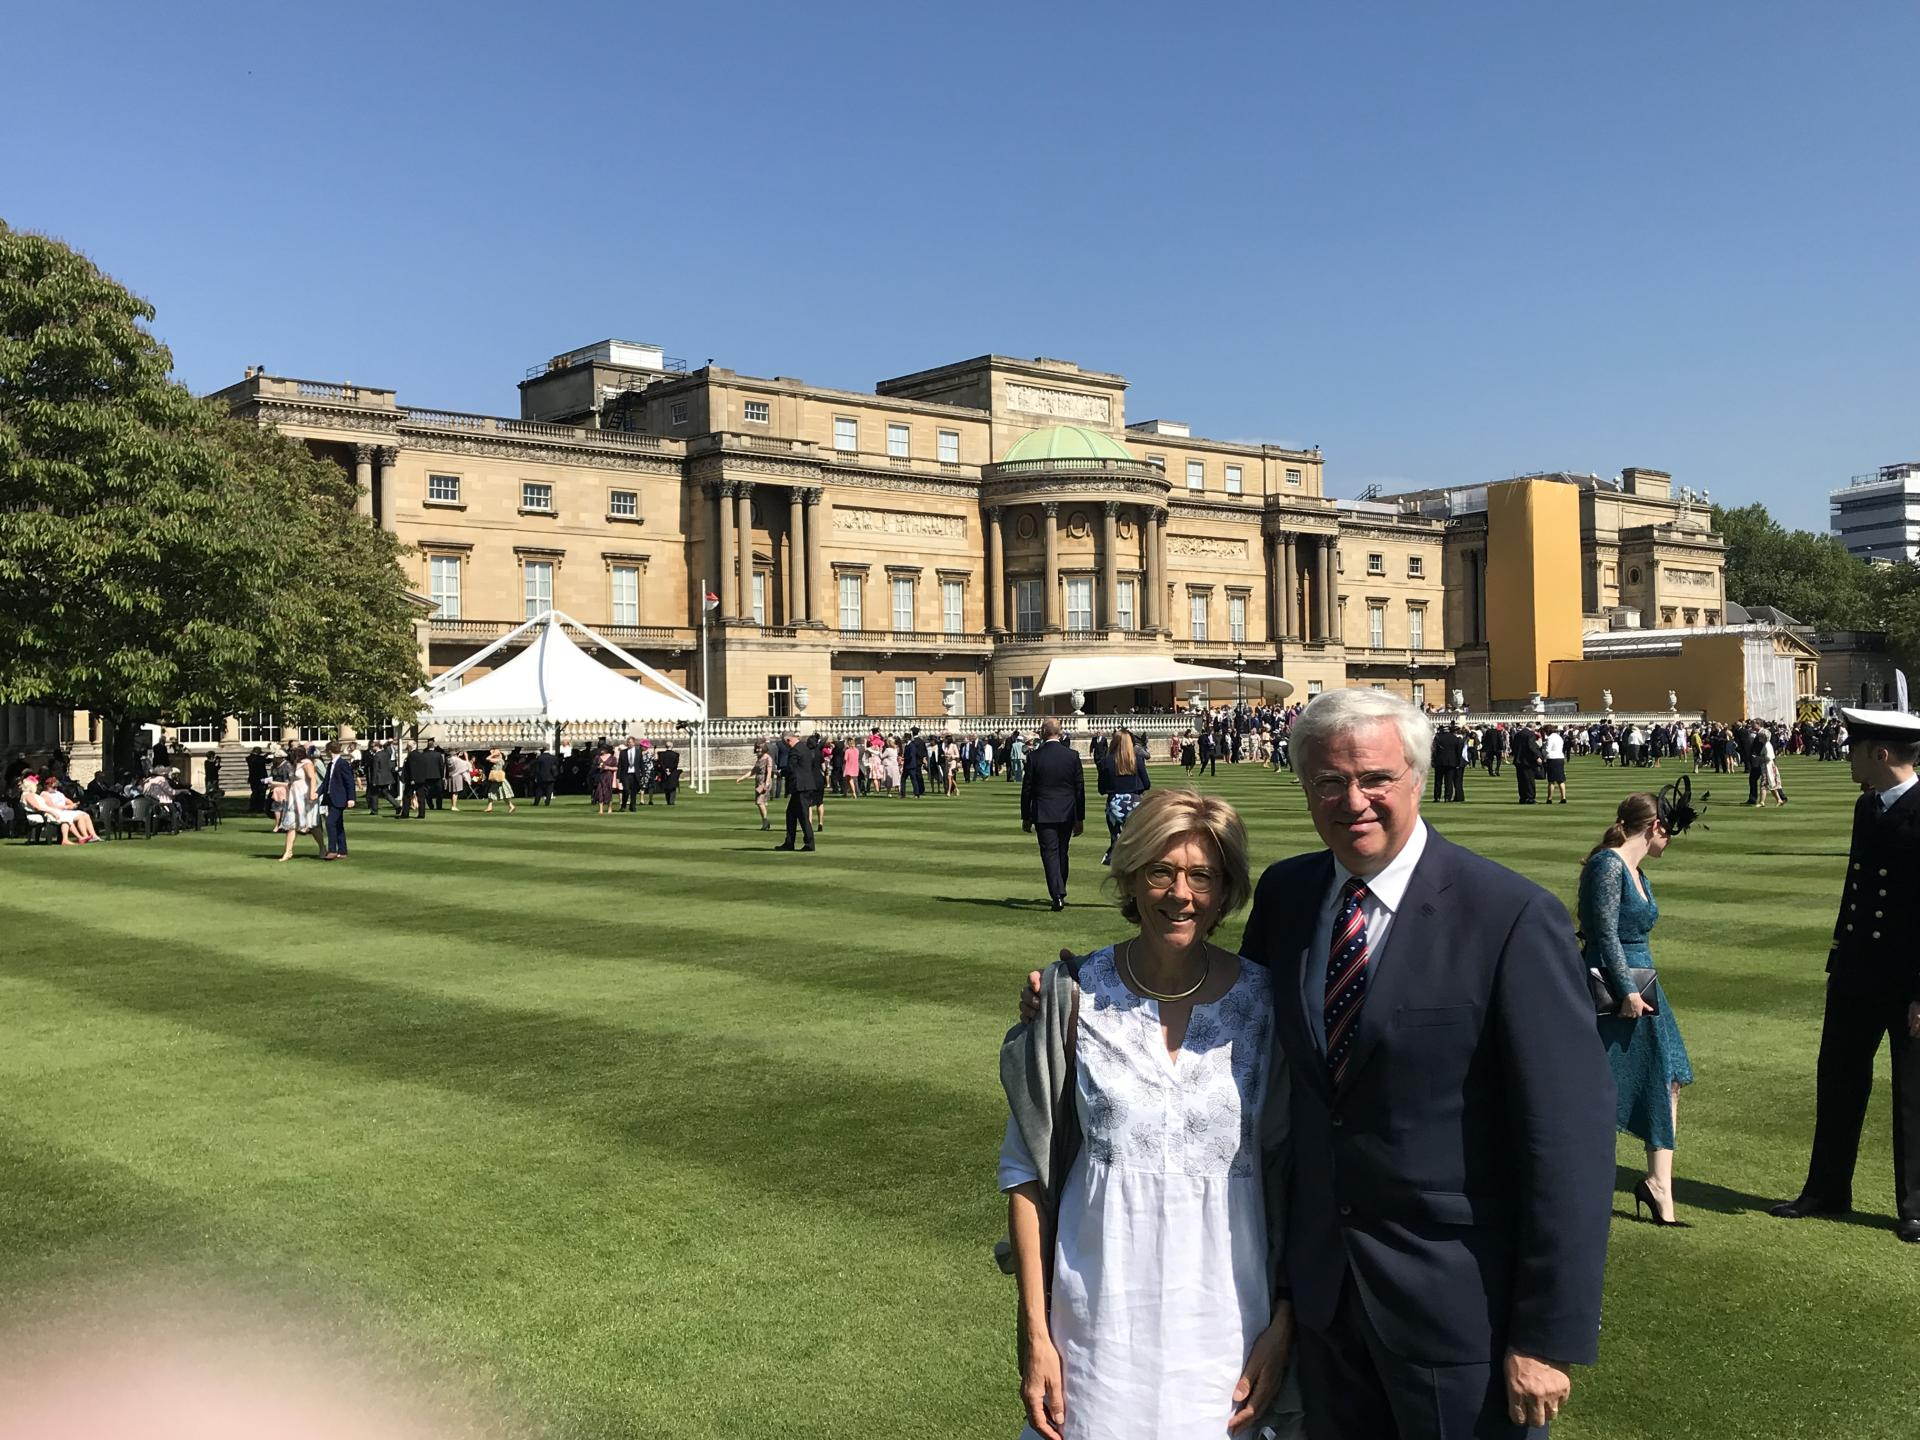 Garden Party Buckingham Palace